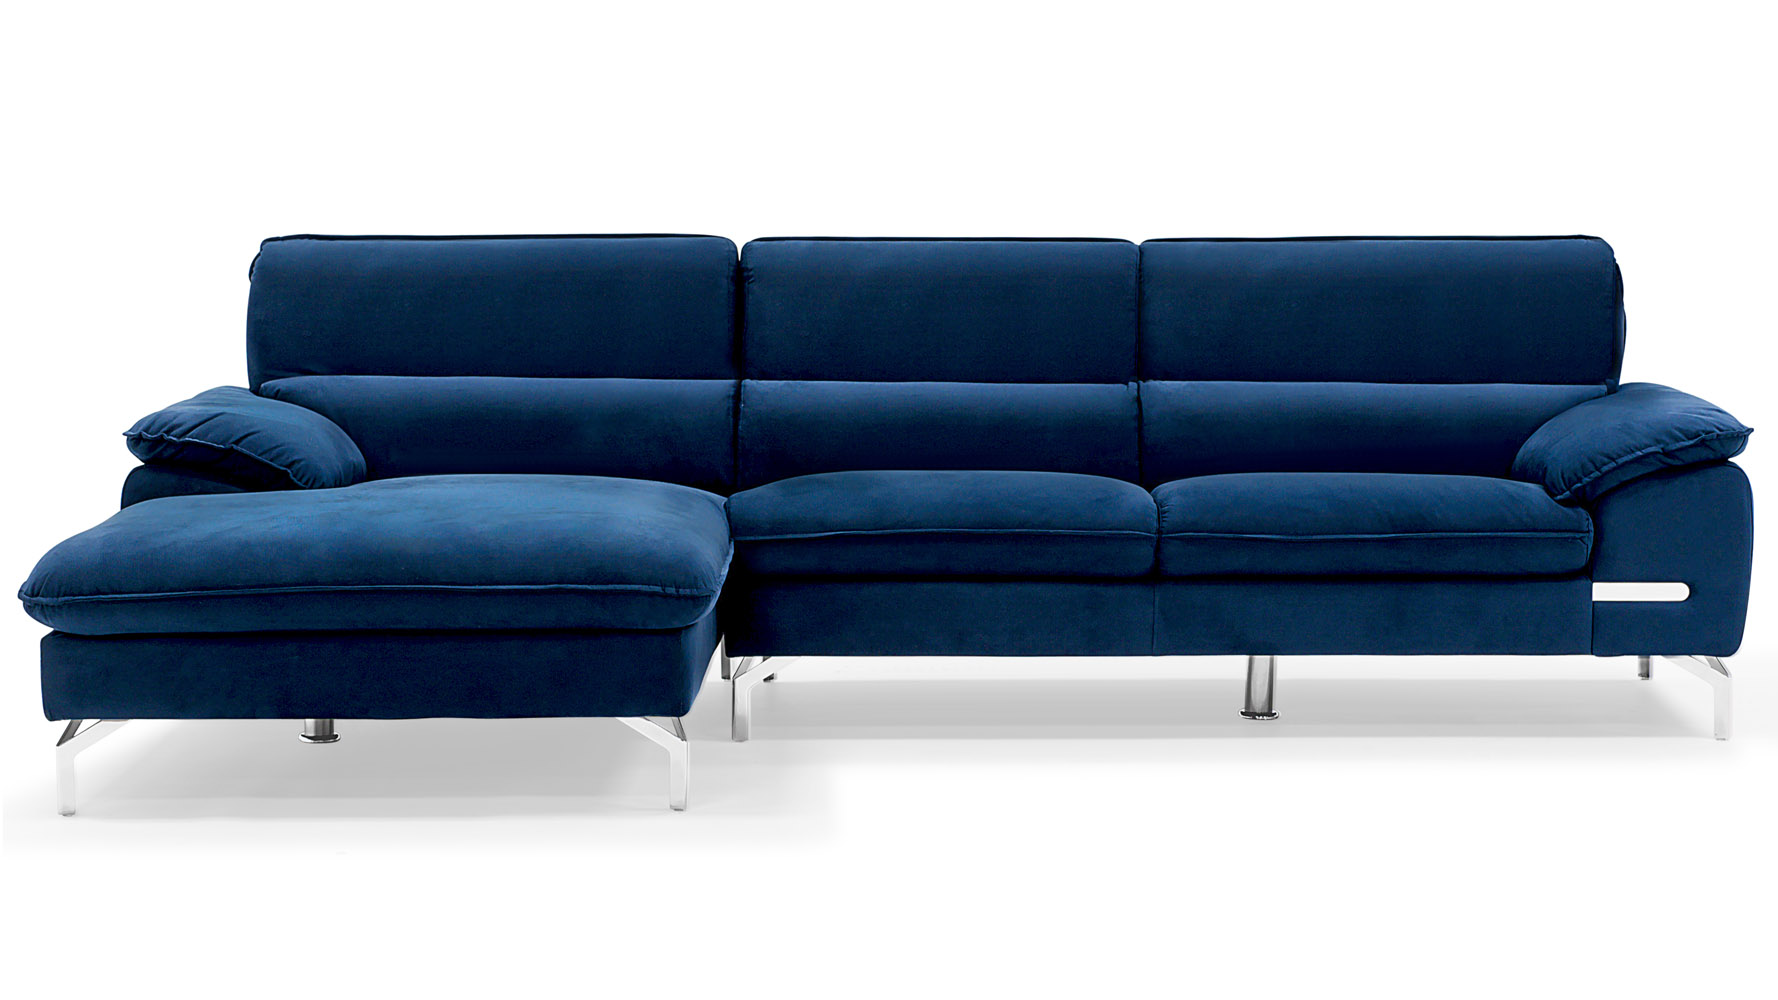 Design Blue Sectional Sofa sapphire blue sectional set with chaise zuri furniture sectional